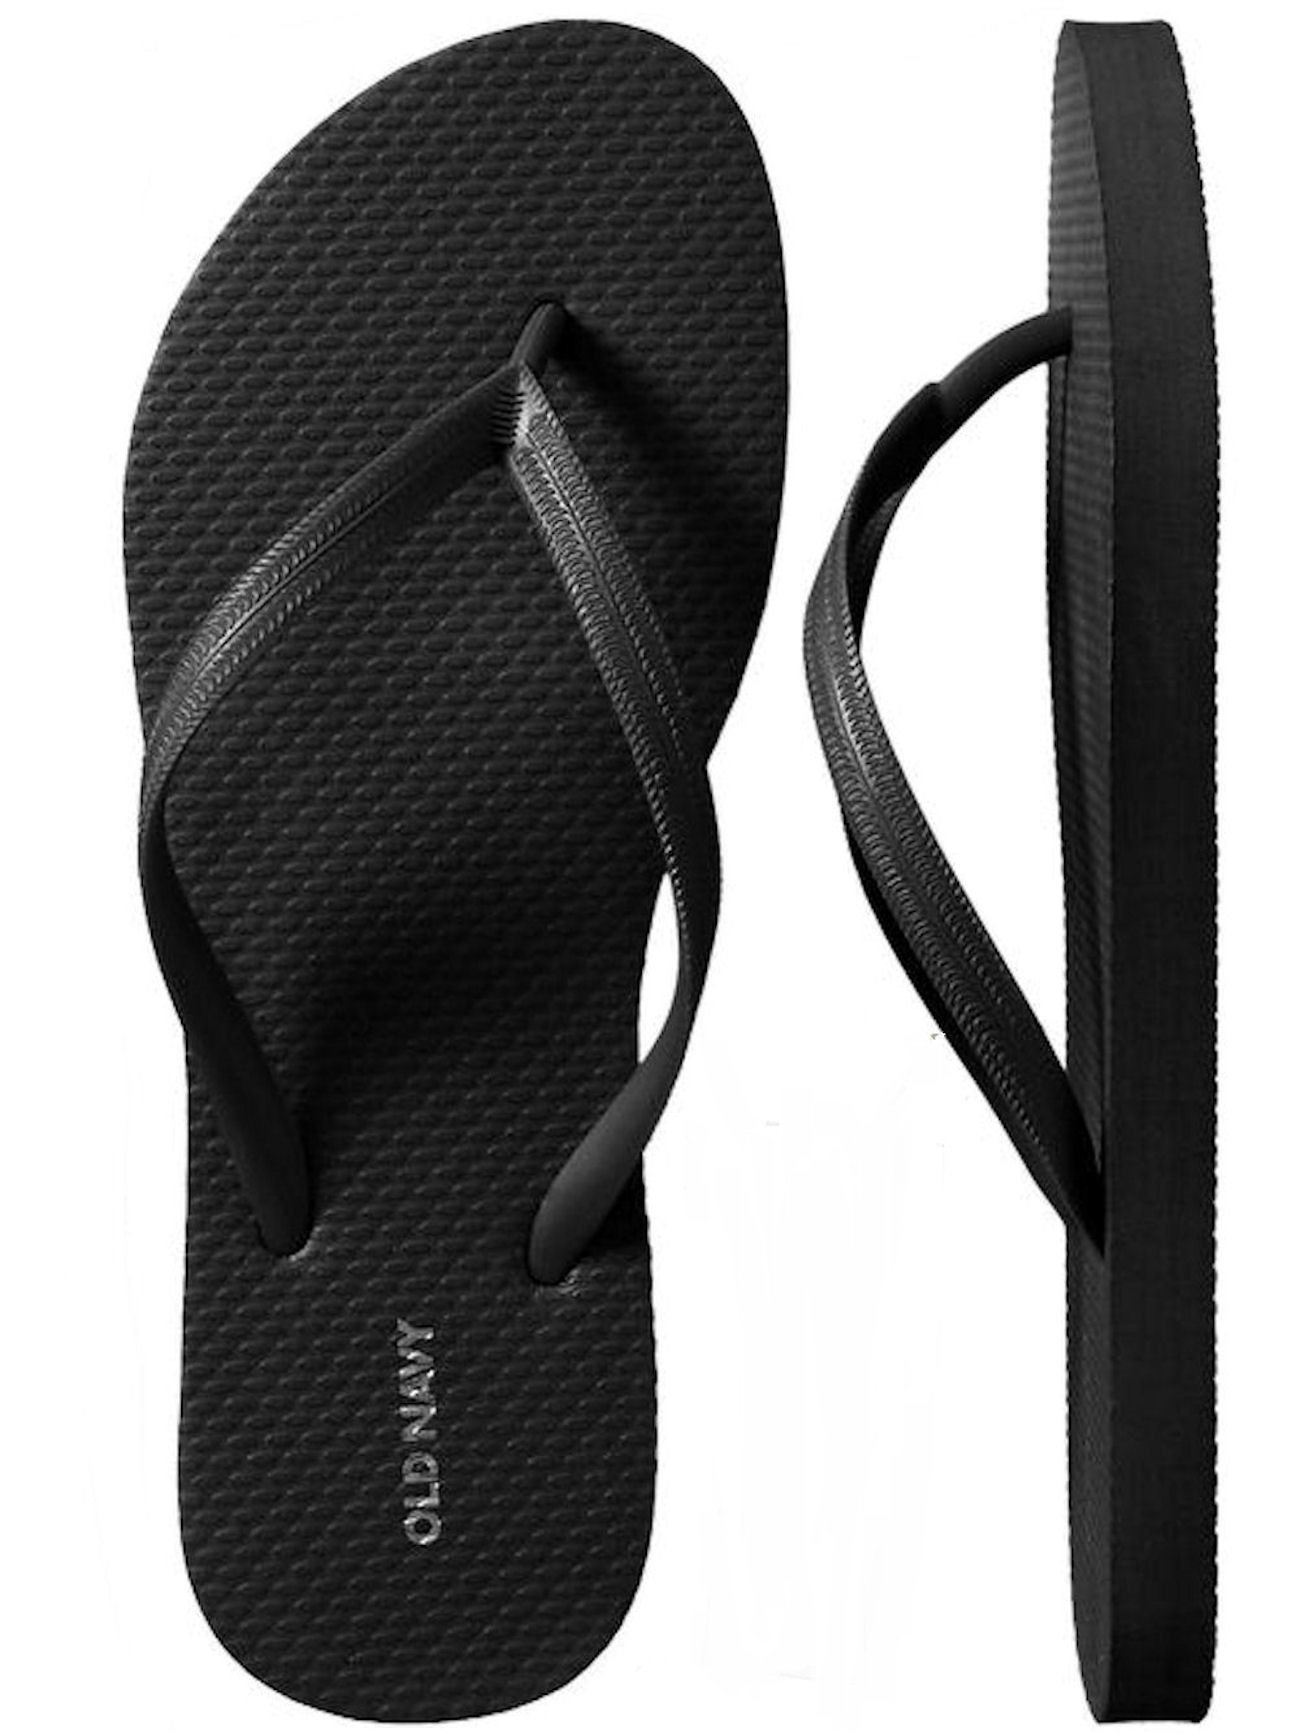 OLD NAVY Flip Flop Sandals for Woman, Great for Beach or Casual Wear (9, Black)